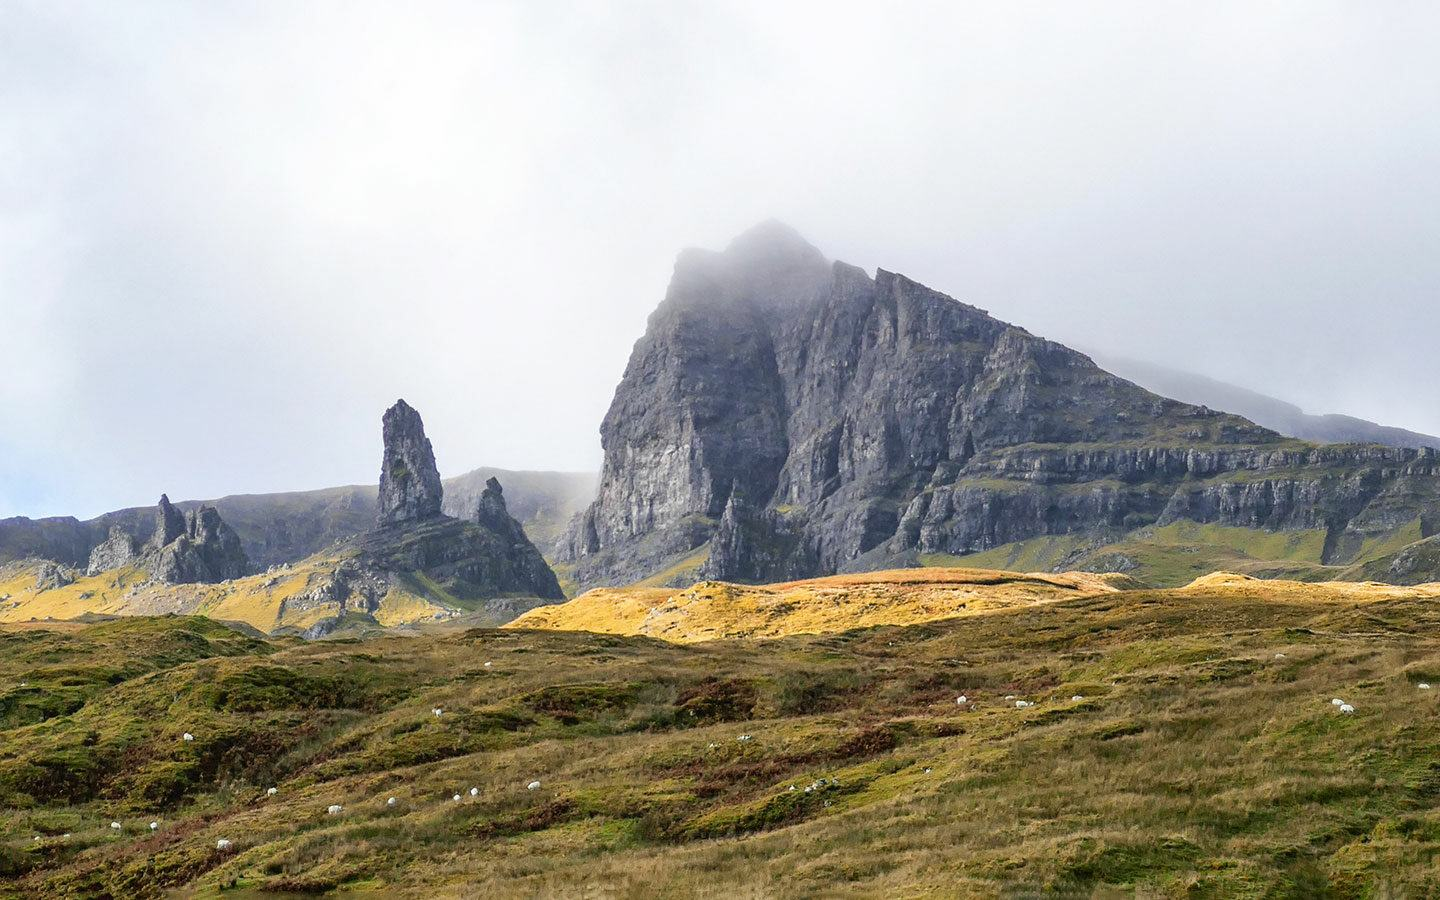 The Old Man of Storr rock formation on the Isle of Skye